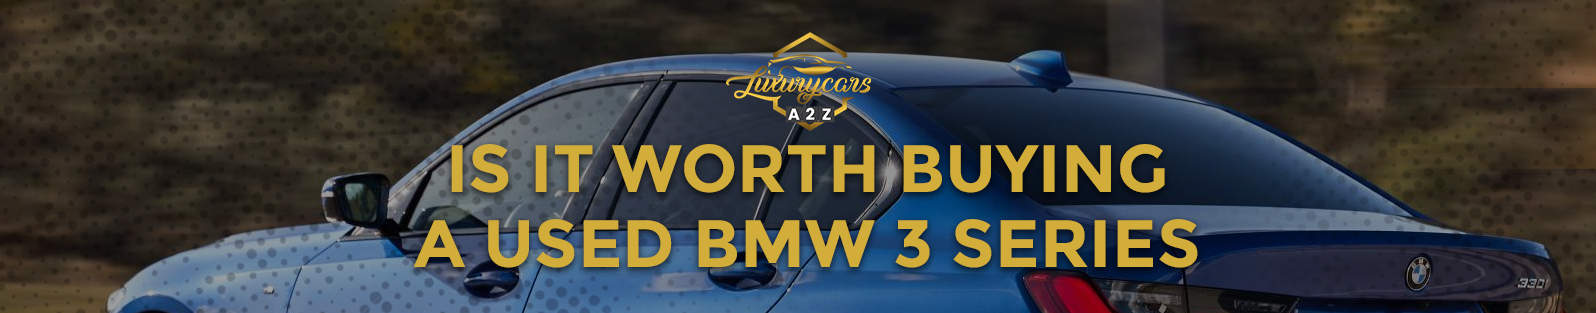 Is it worth buying a used BMW 3 Series?